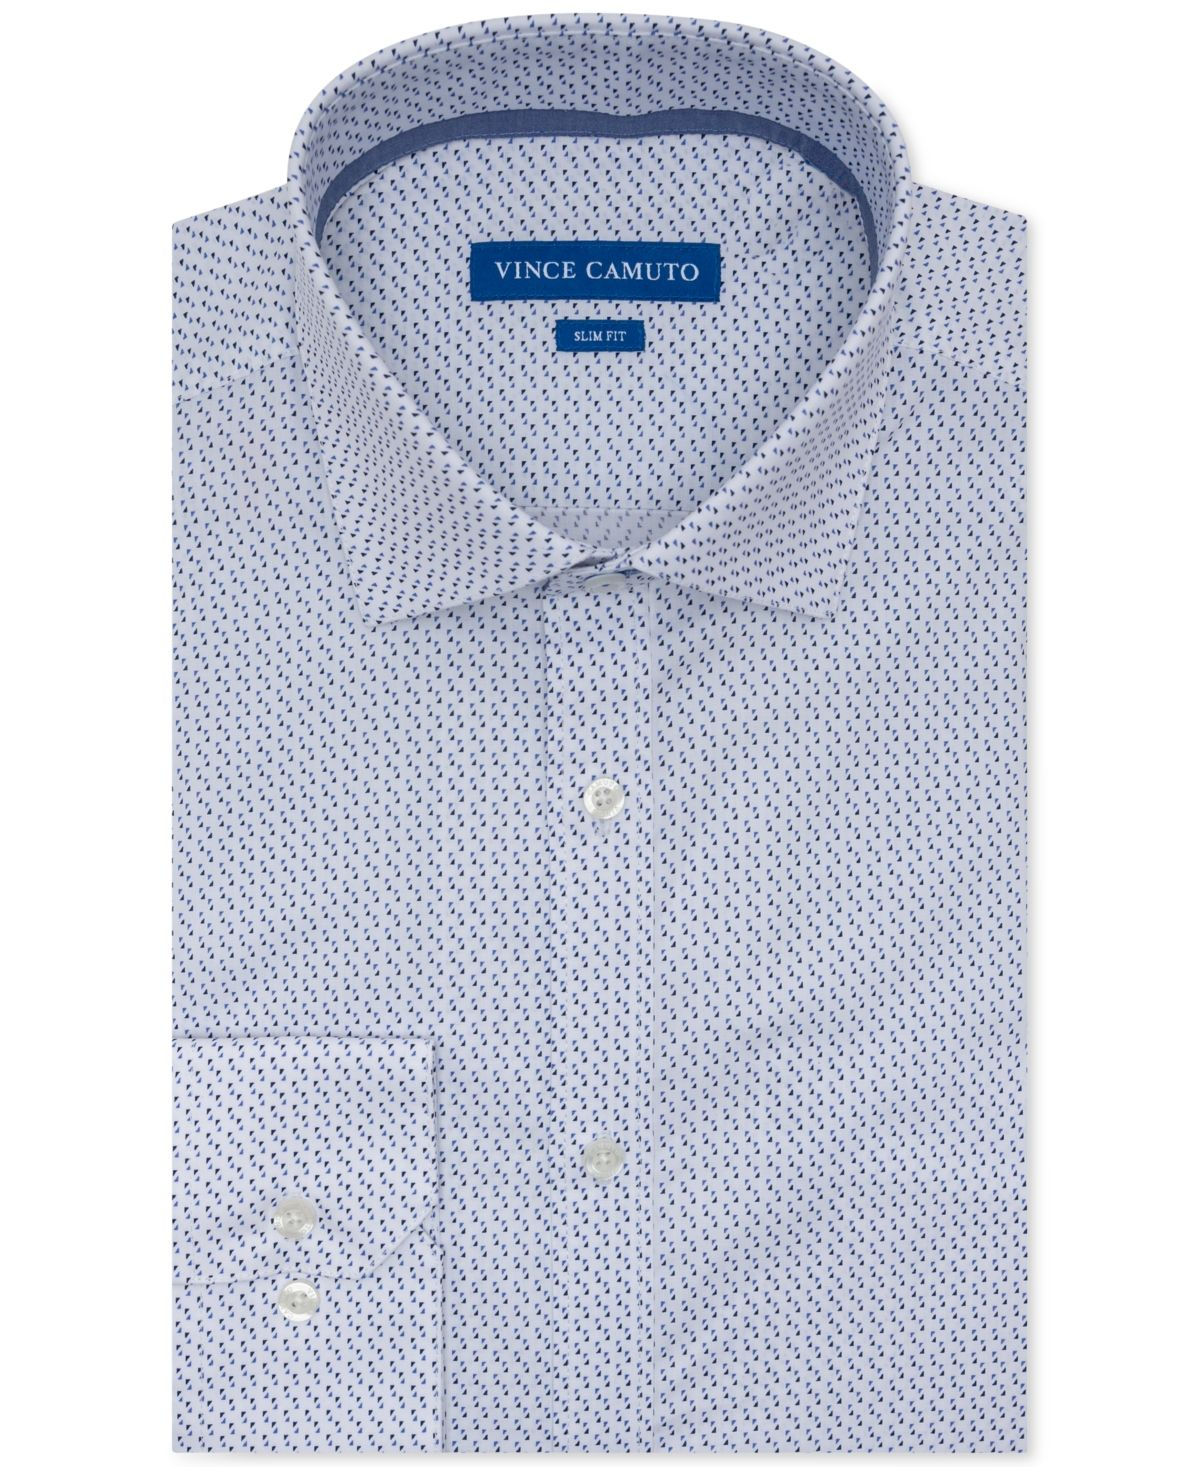 Vince Camuto Men's Slim-Fit Performance Stretch Geo-Print Dress Shirt – White W/ Blue Check